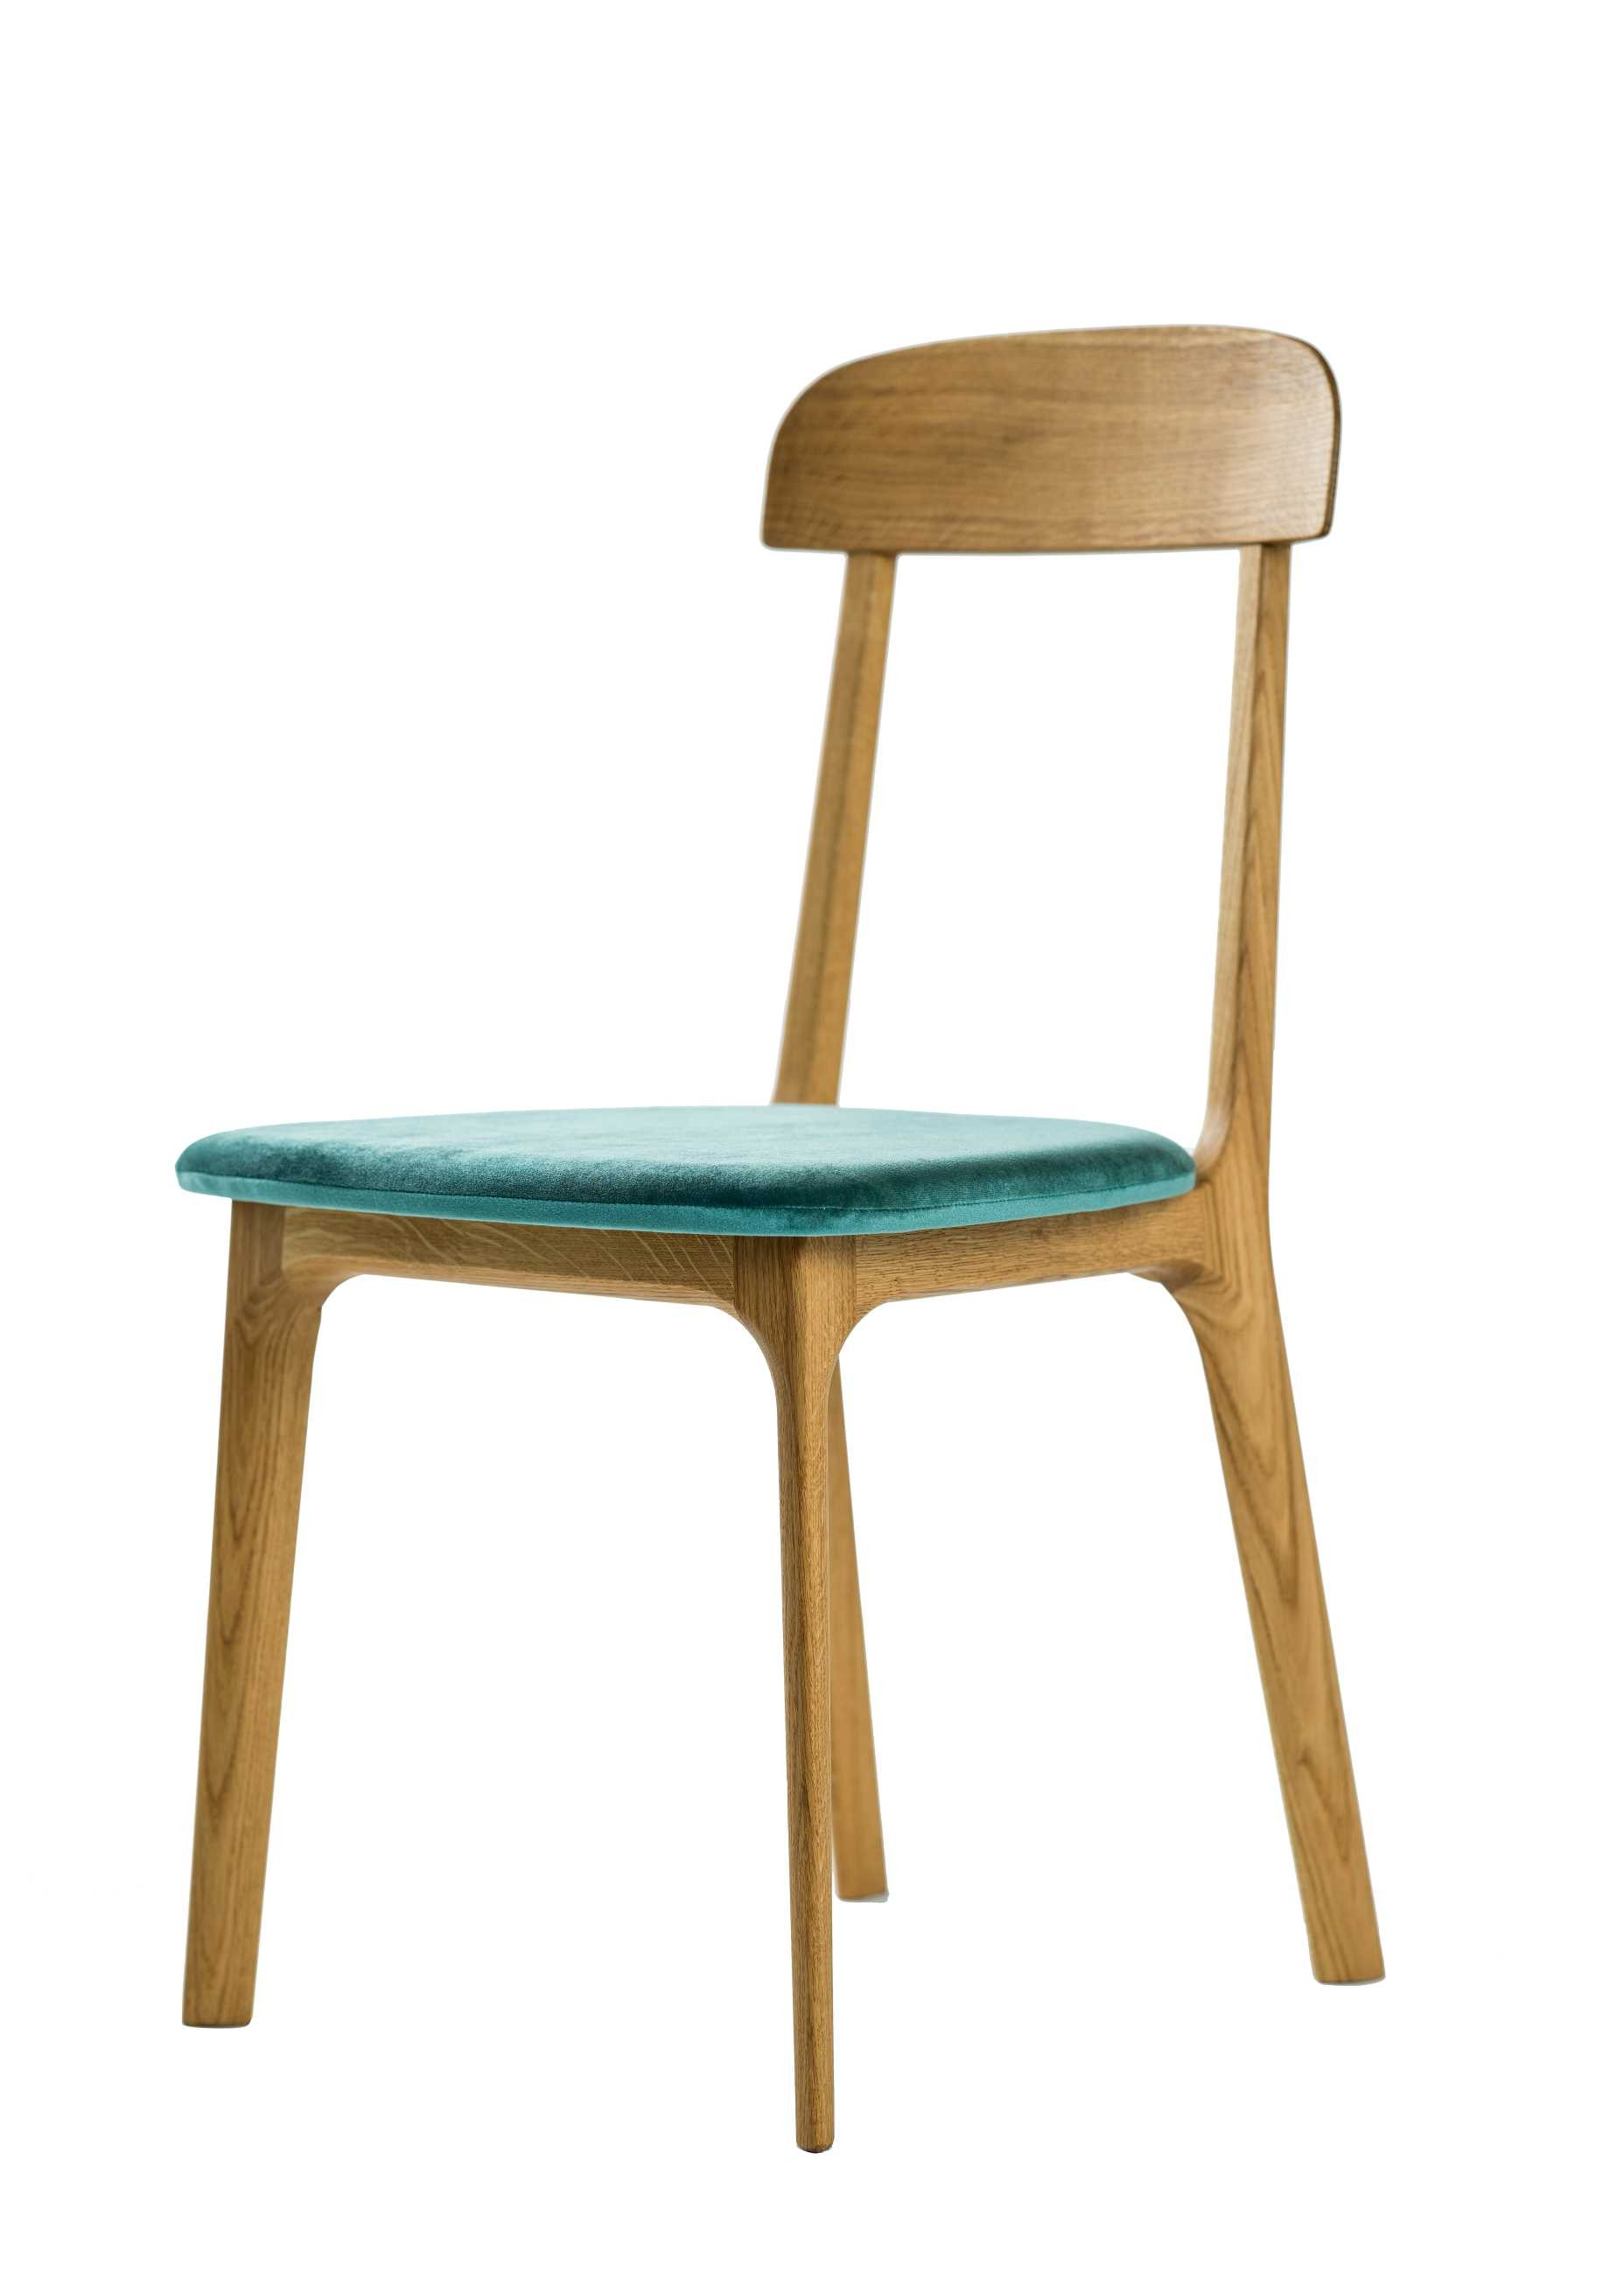 ELICA CHAIR WITH UPHOLSTERED SEAT